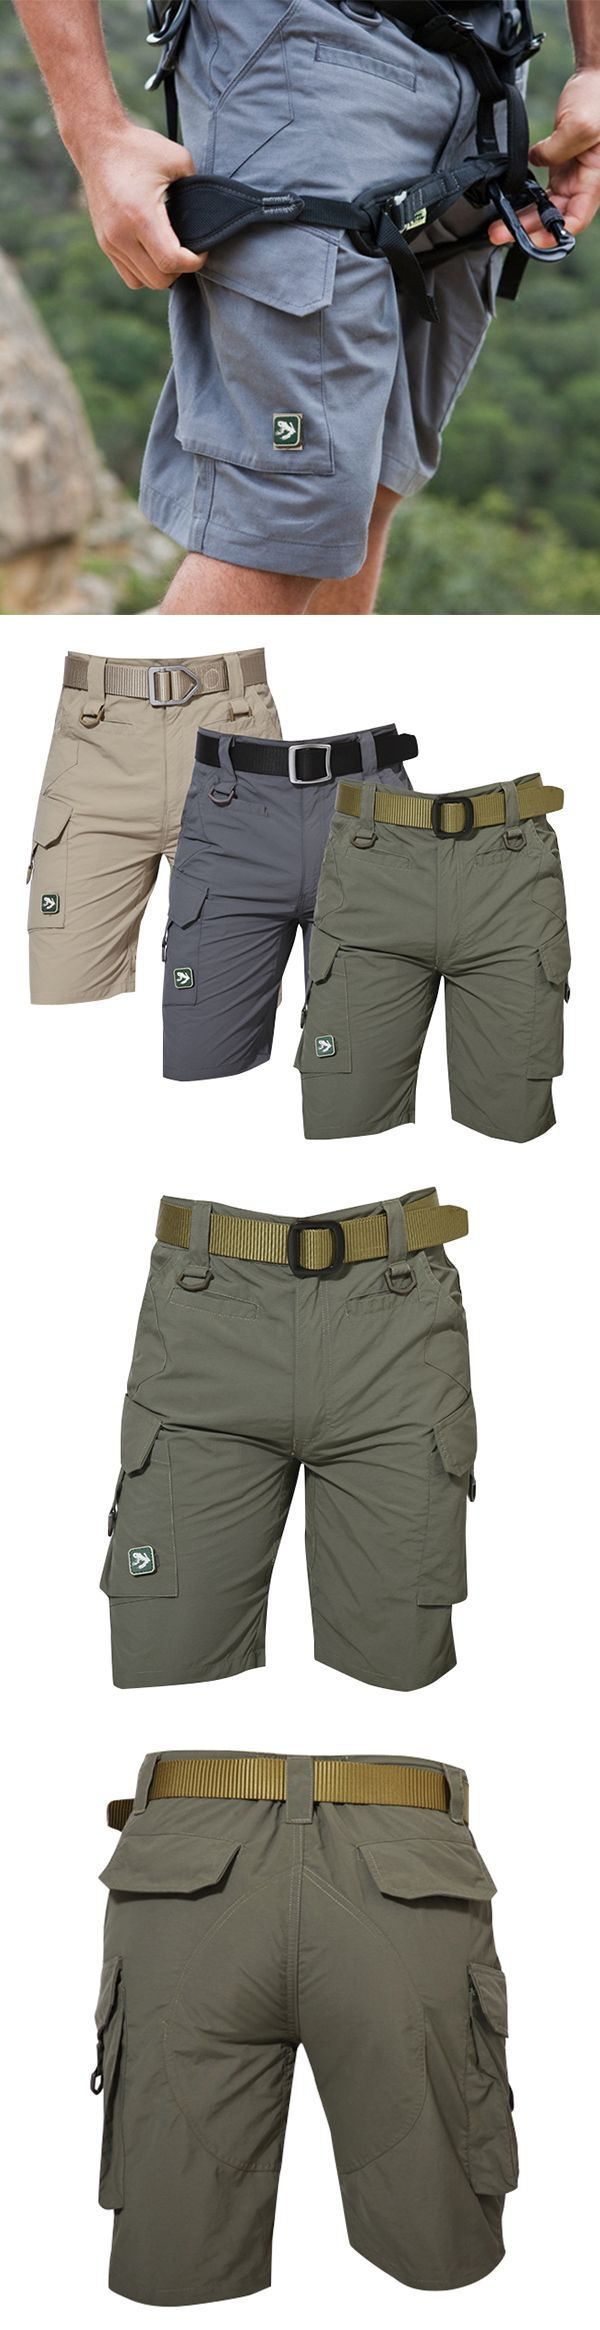 US$36.56 (47% OFF) Mens Outdoor Quick-drying TAD Tactical Shorts / Multi-pocket Sport Shorts